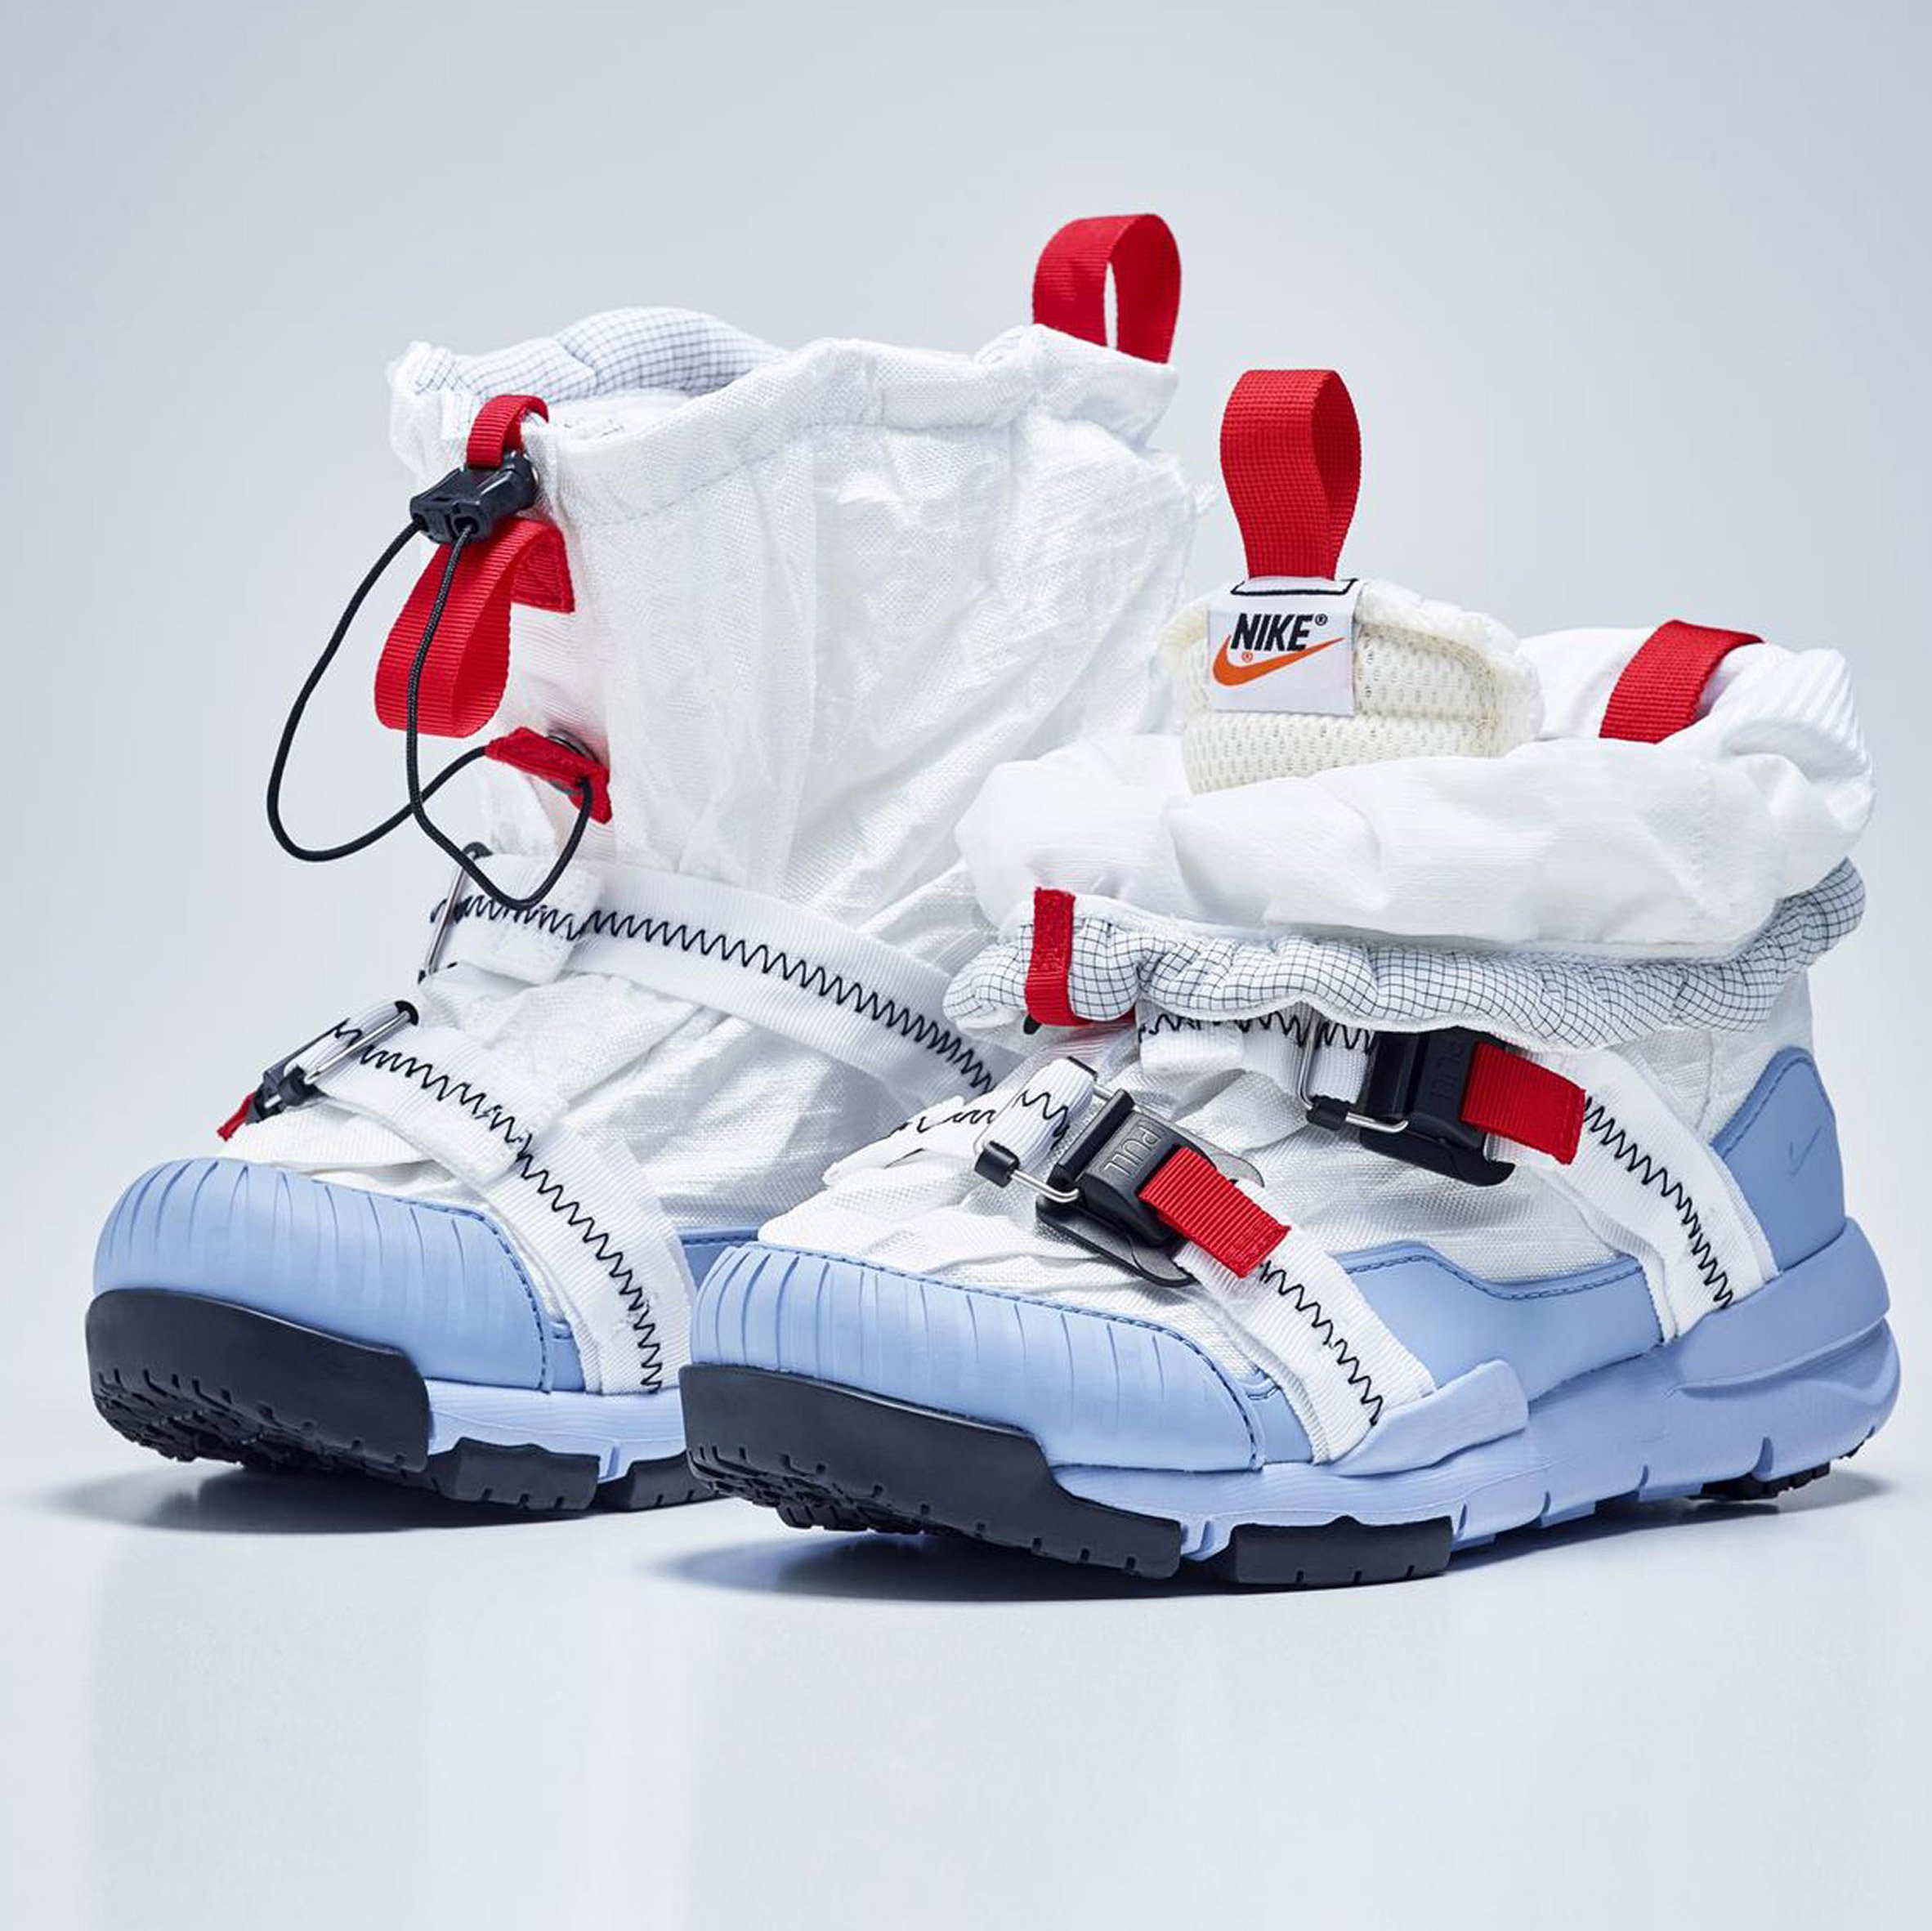 best sneakers 5375b 7bcc8 Tom Sachs updates Nike Mars Yard trainer to resemble shoes w